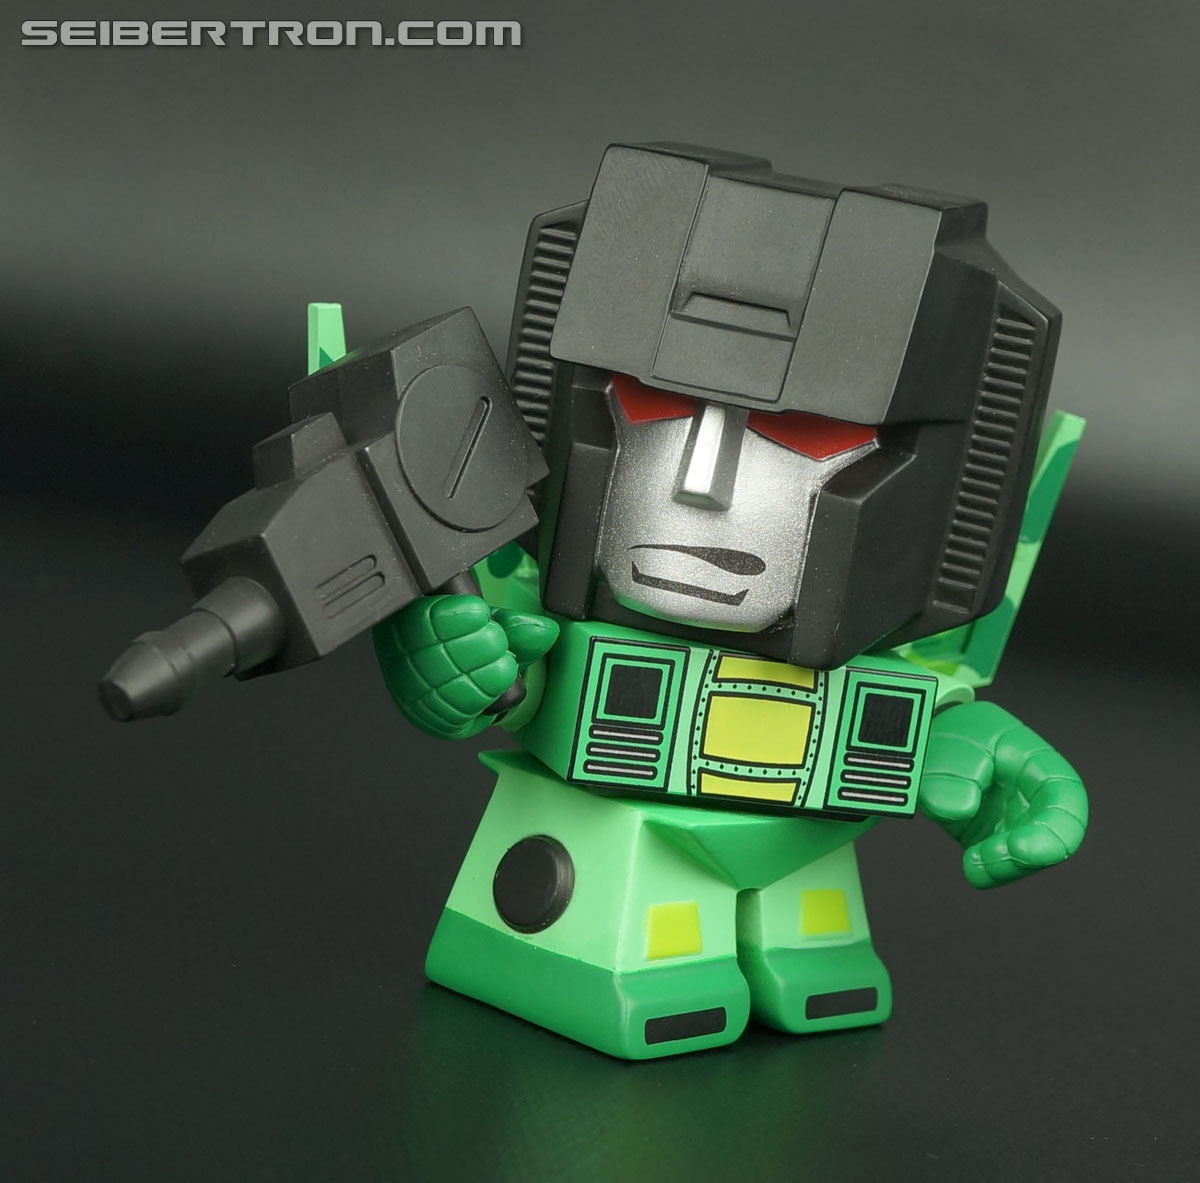 Transformers Loyal Subjects Rainmaker (Green) (Acid Storm) (Image #28 of 40)